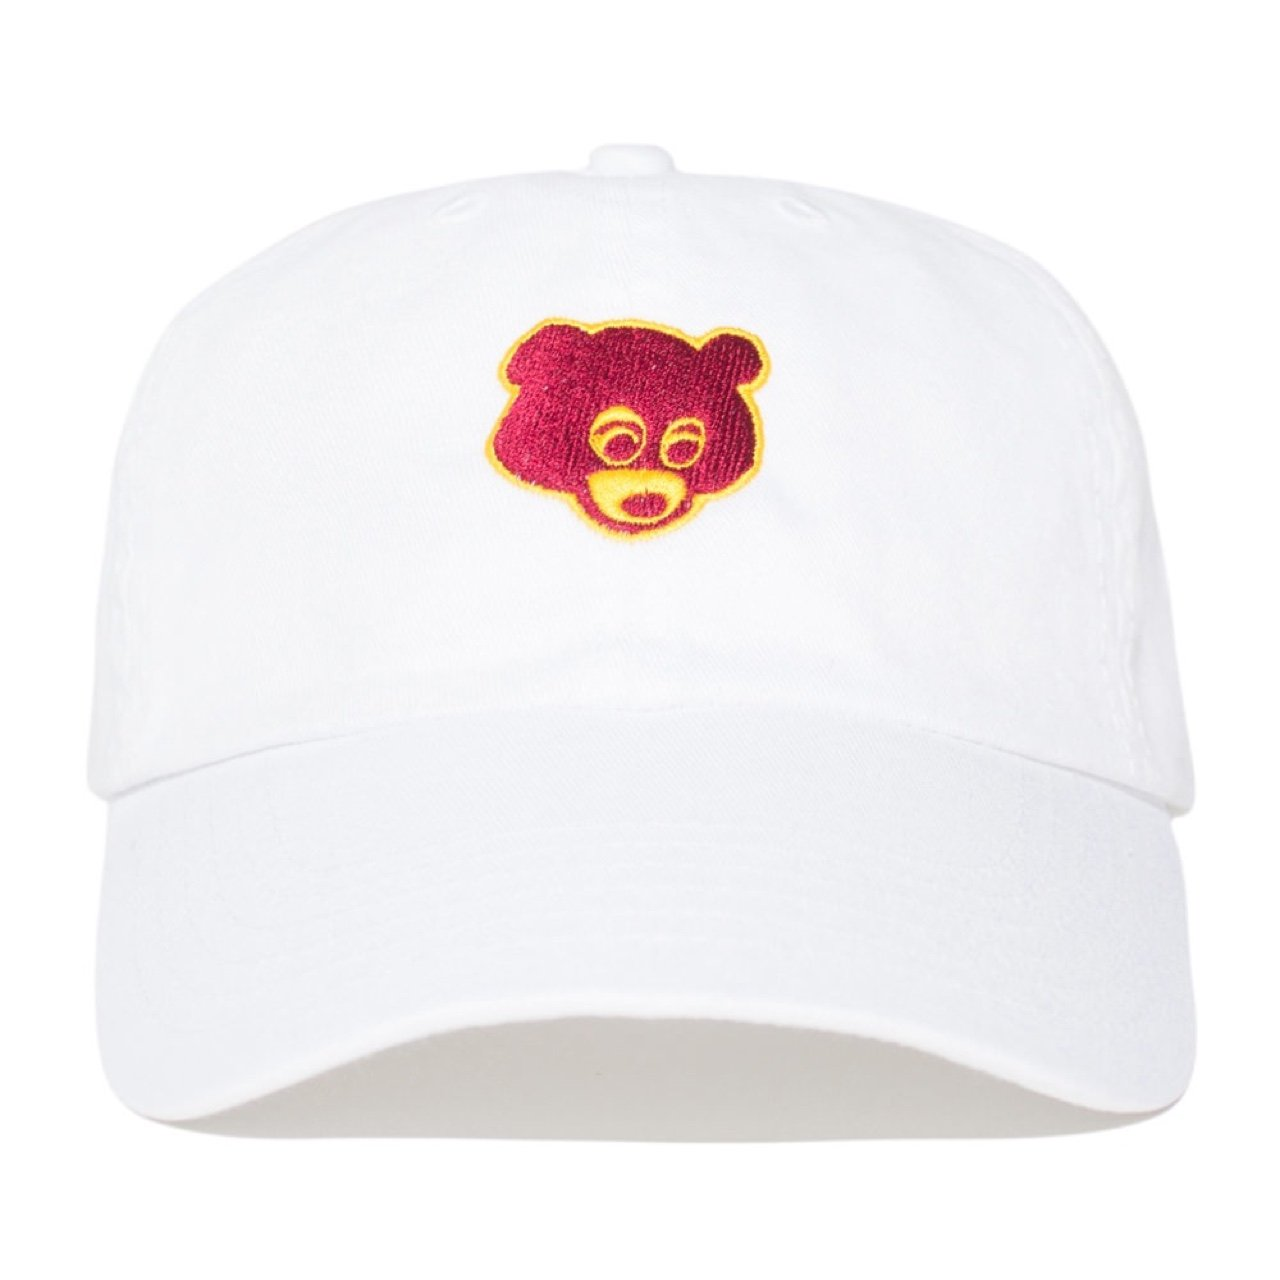 theprolificshop. 3 years ago. United States. College Dropout Bear Hat ... caad24d68a7